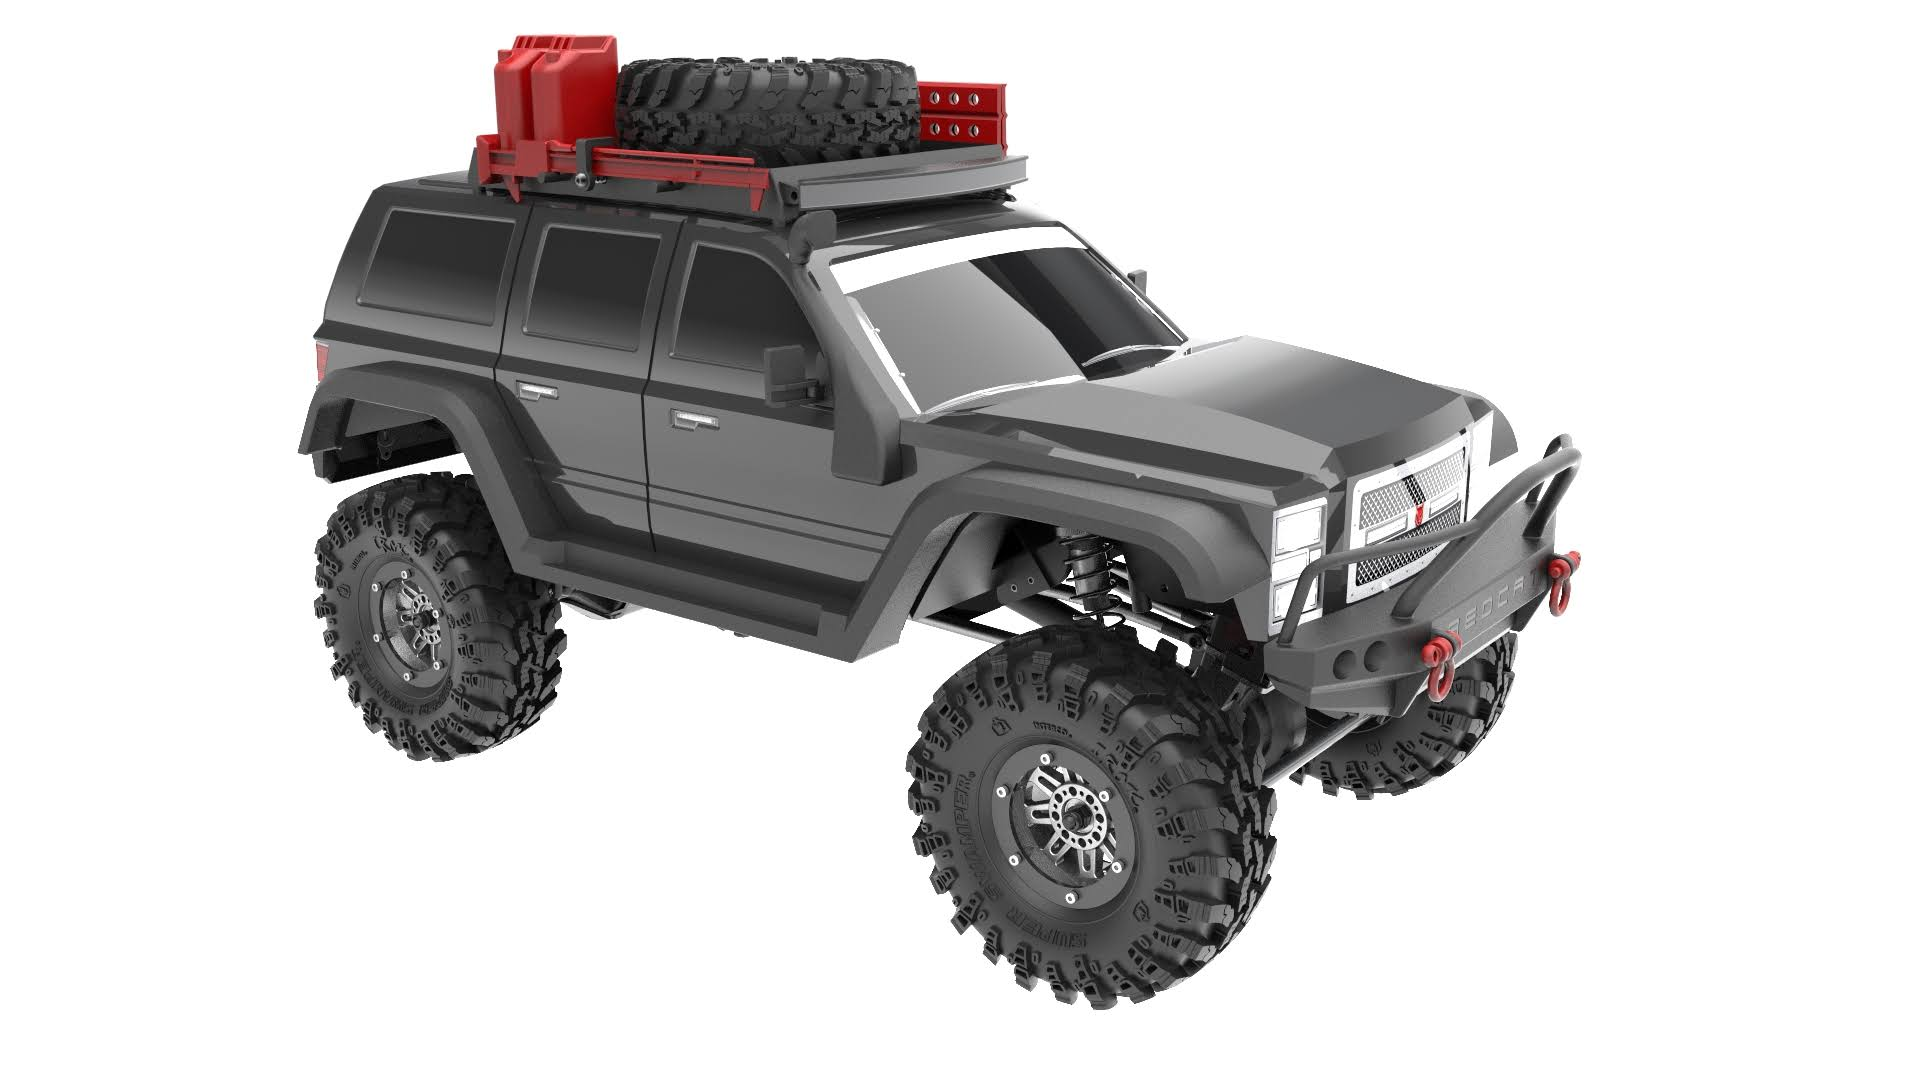 Redcat Gen7 Pro Racing Everest - Black, 1/10 scale